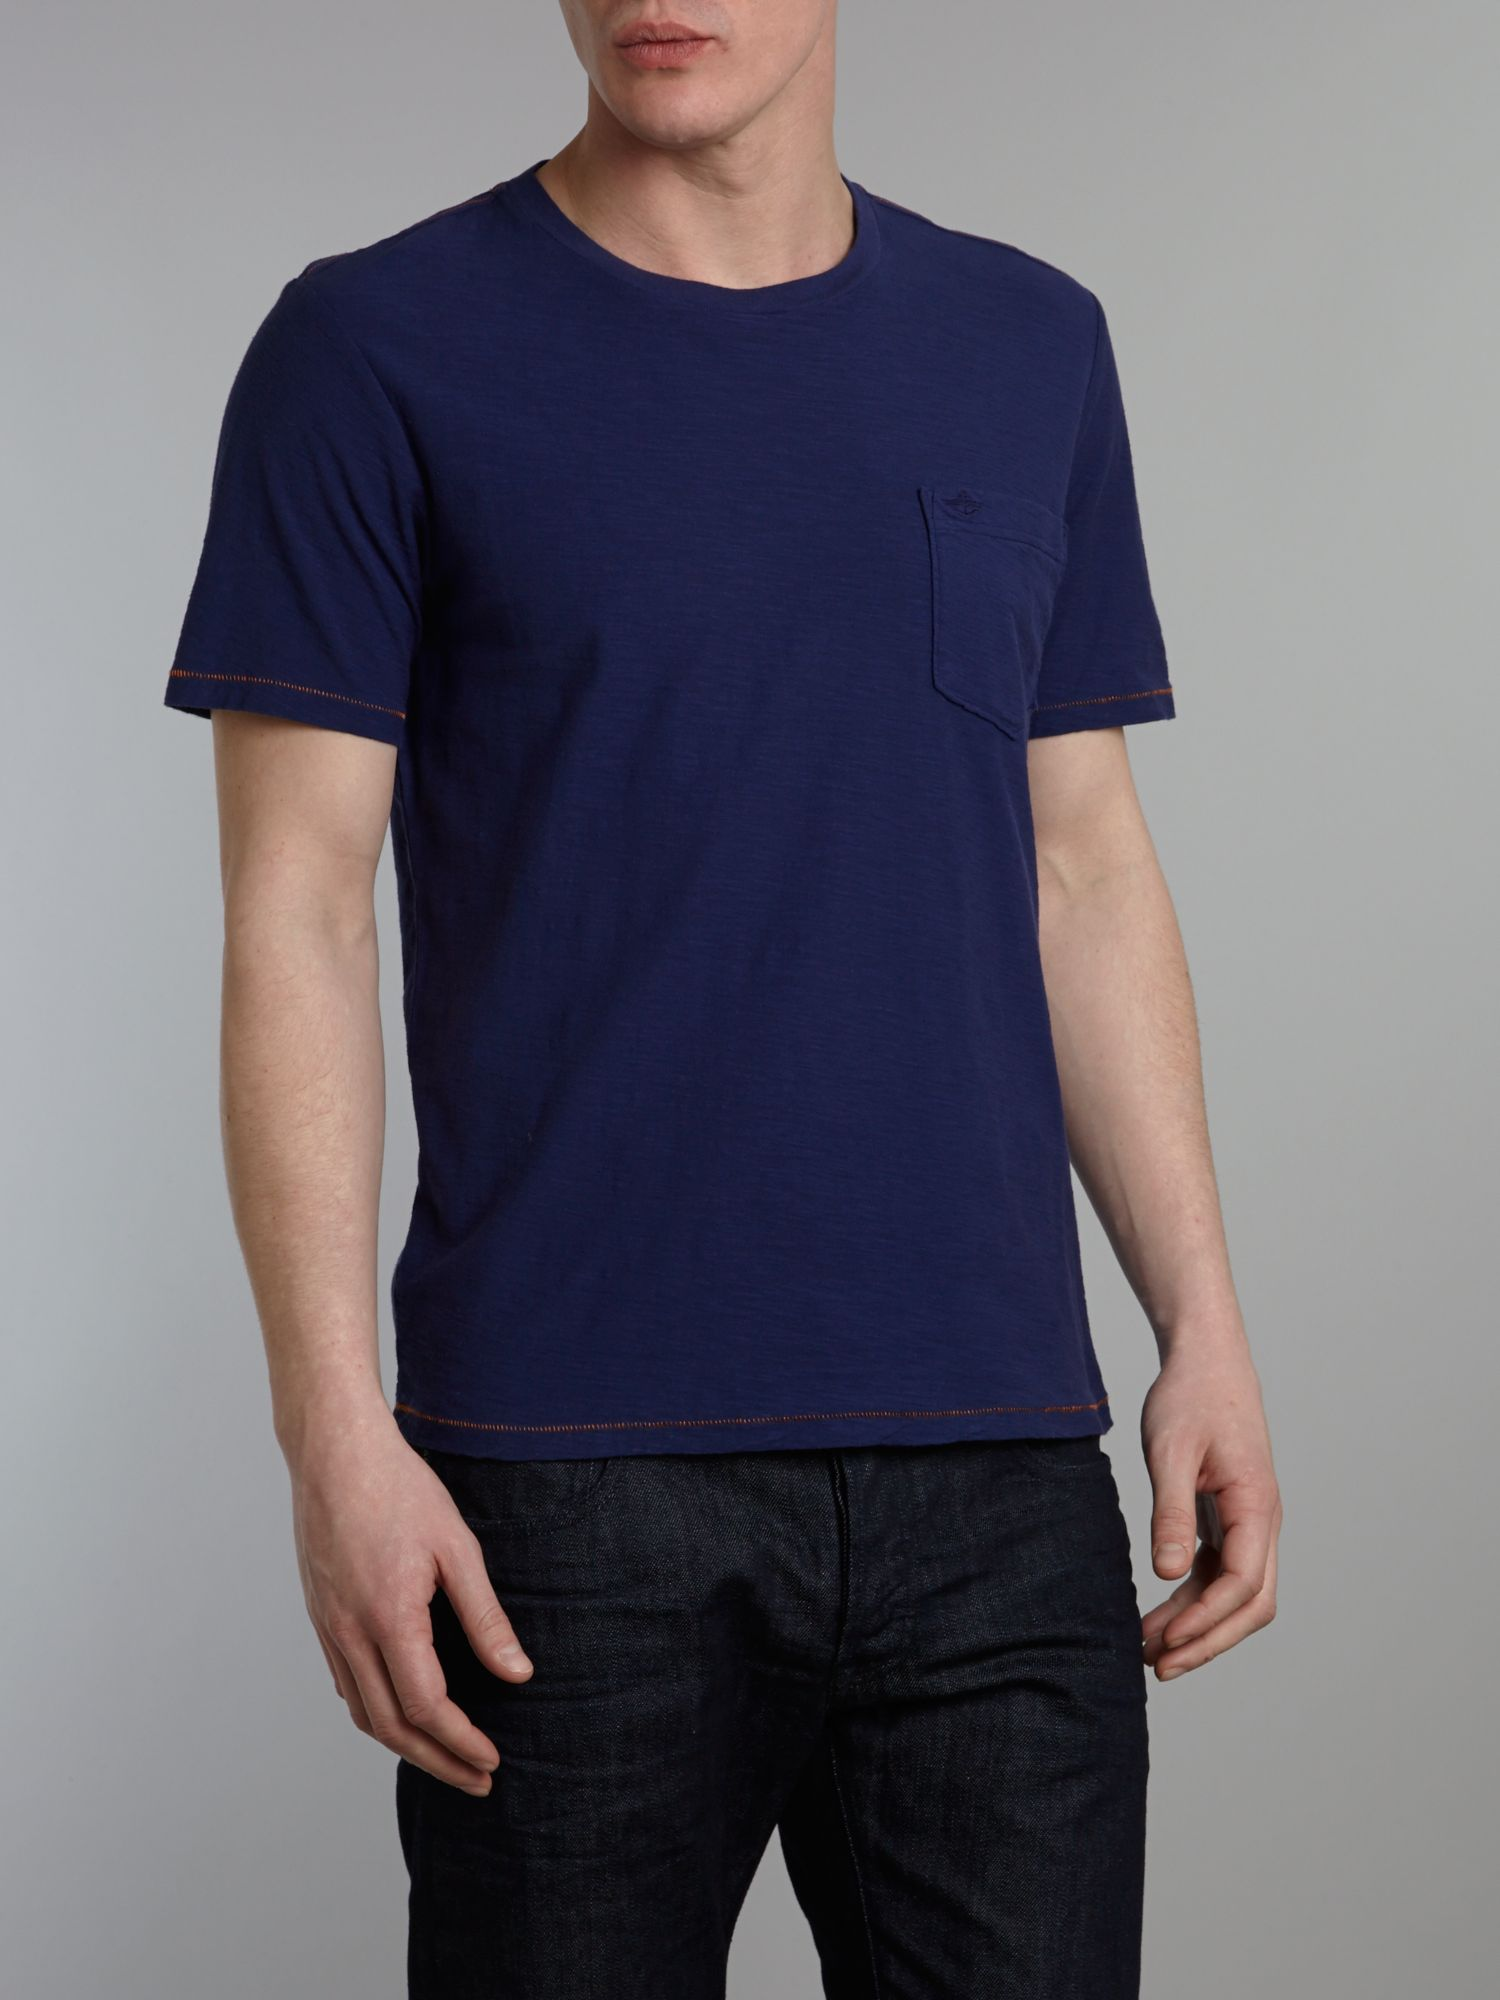 One pocket T-shirt